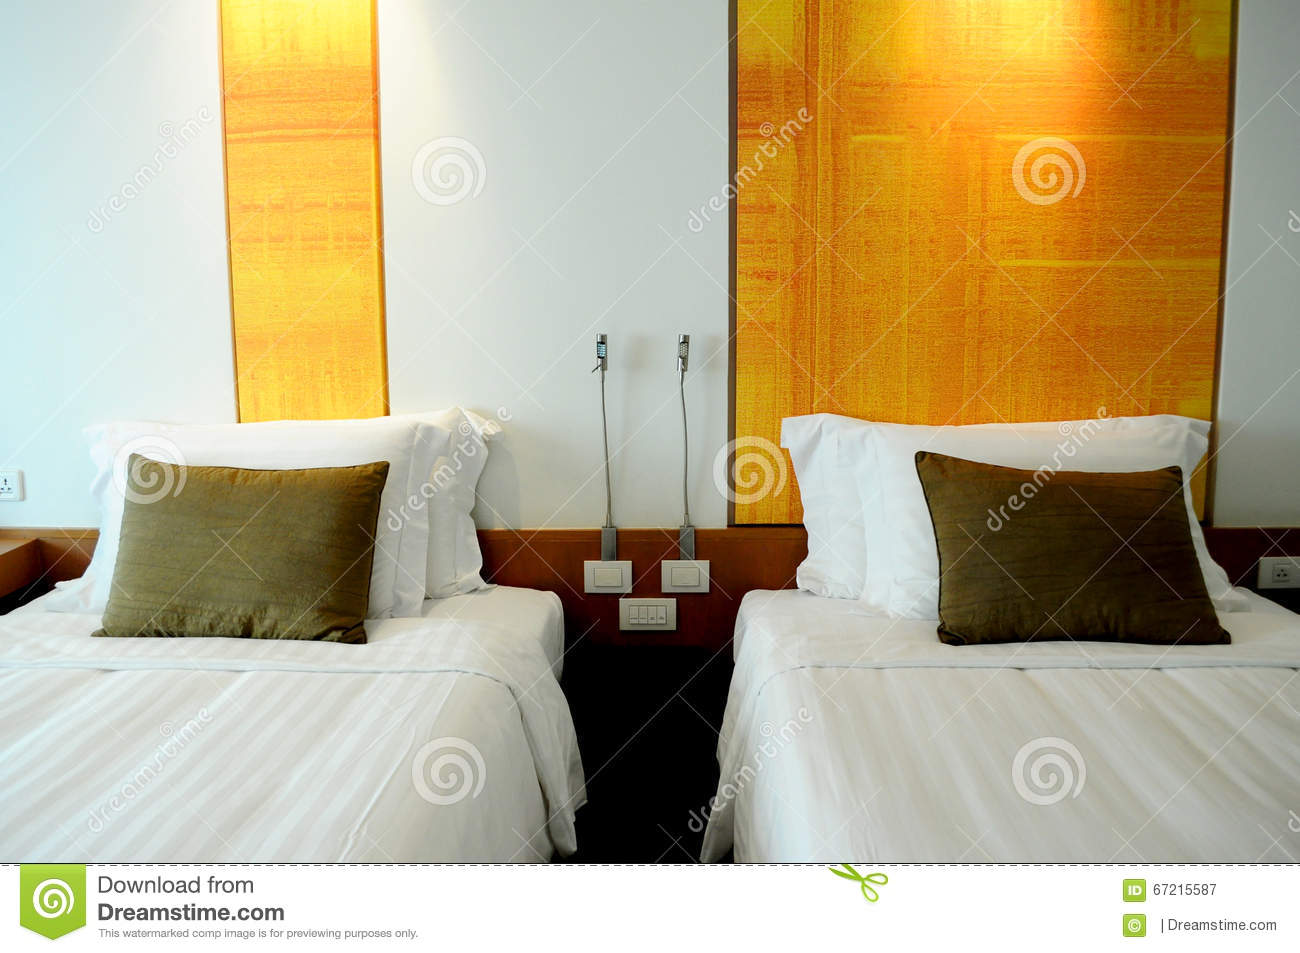 Pillows on Twin beds